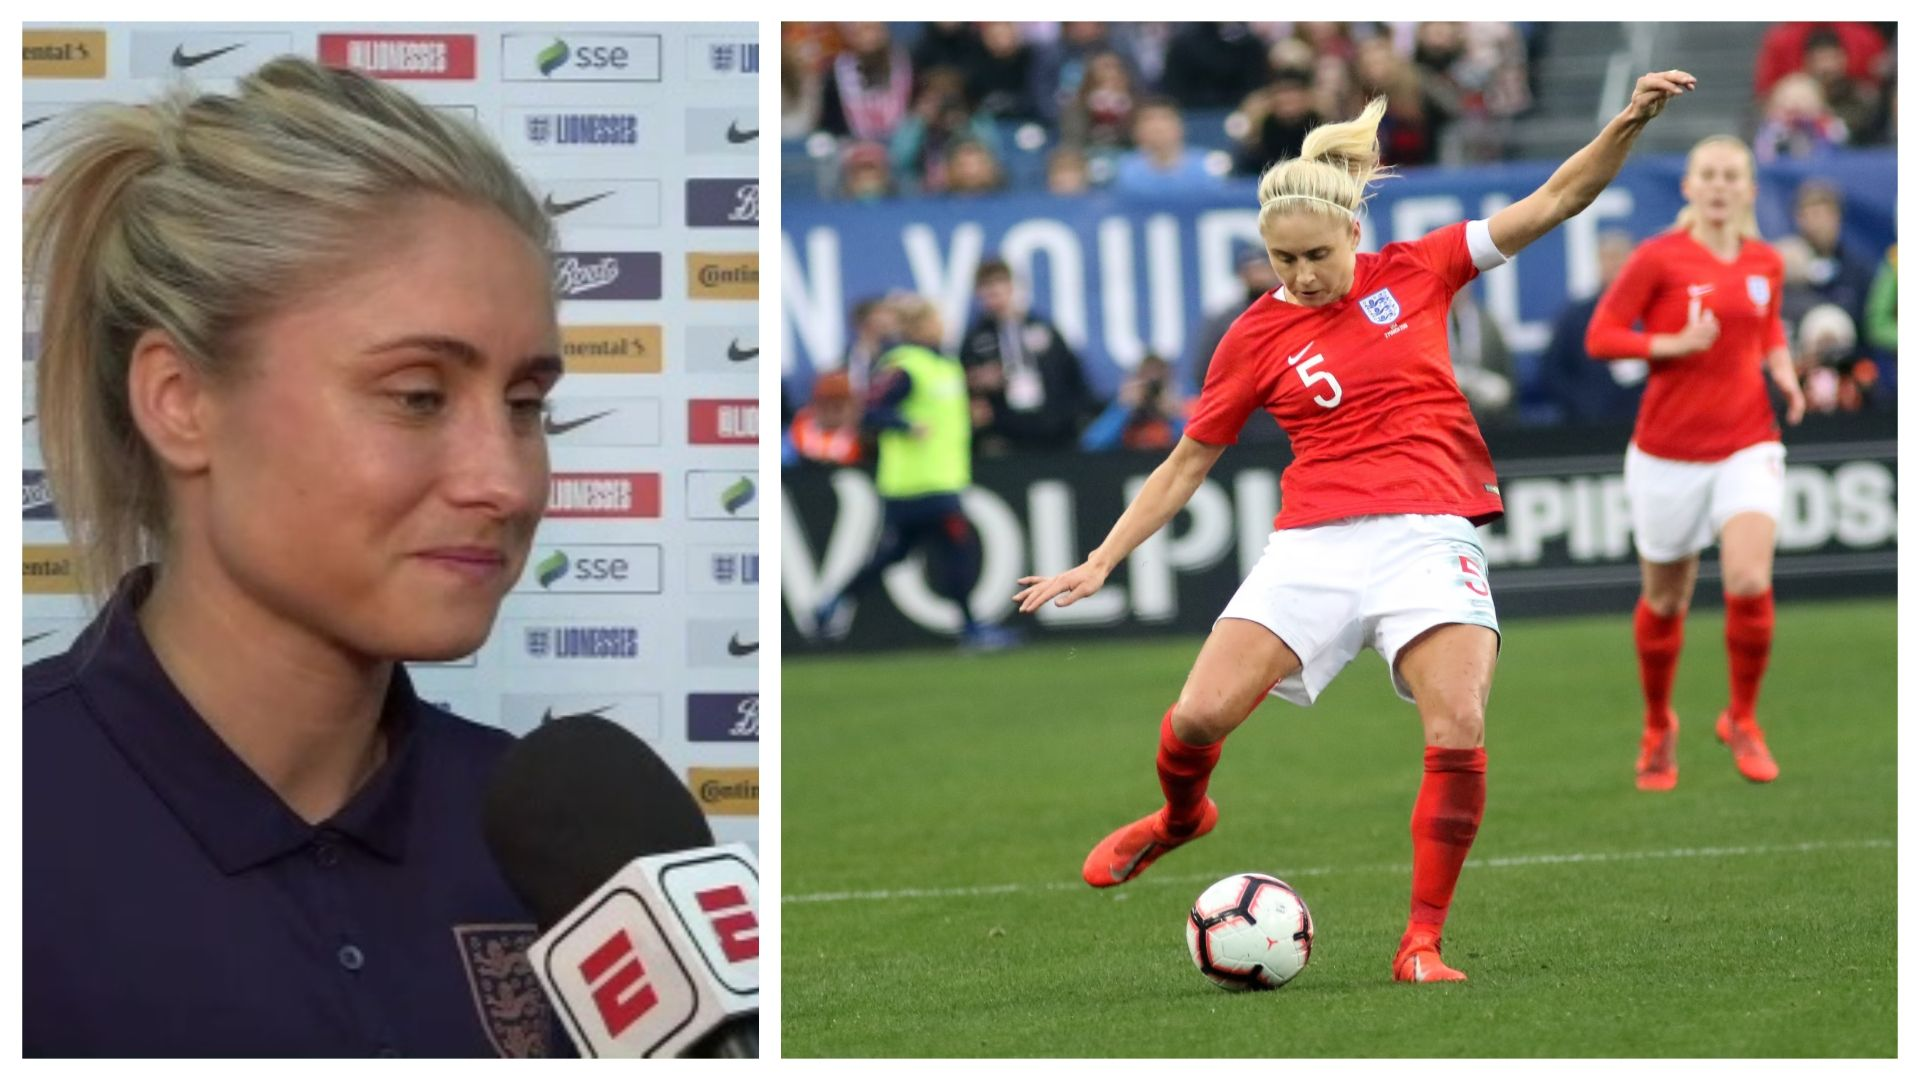 England captain Houghton 'excited' for her 3rd World Cup